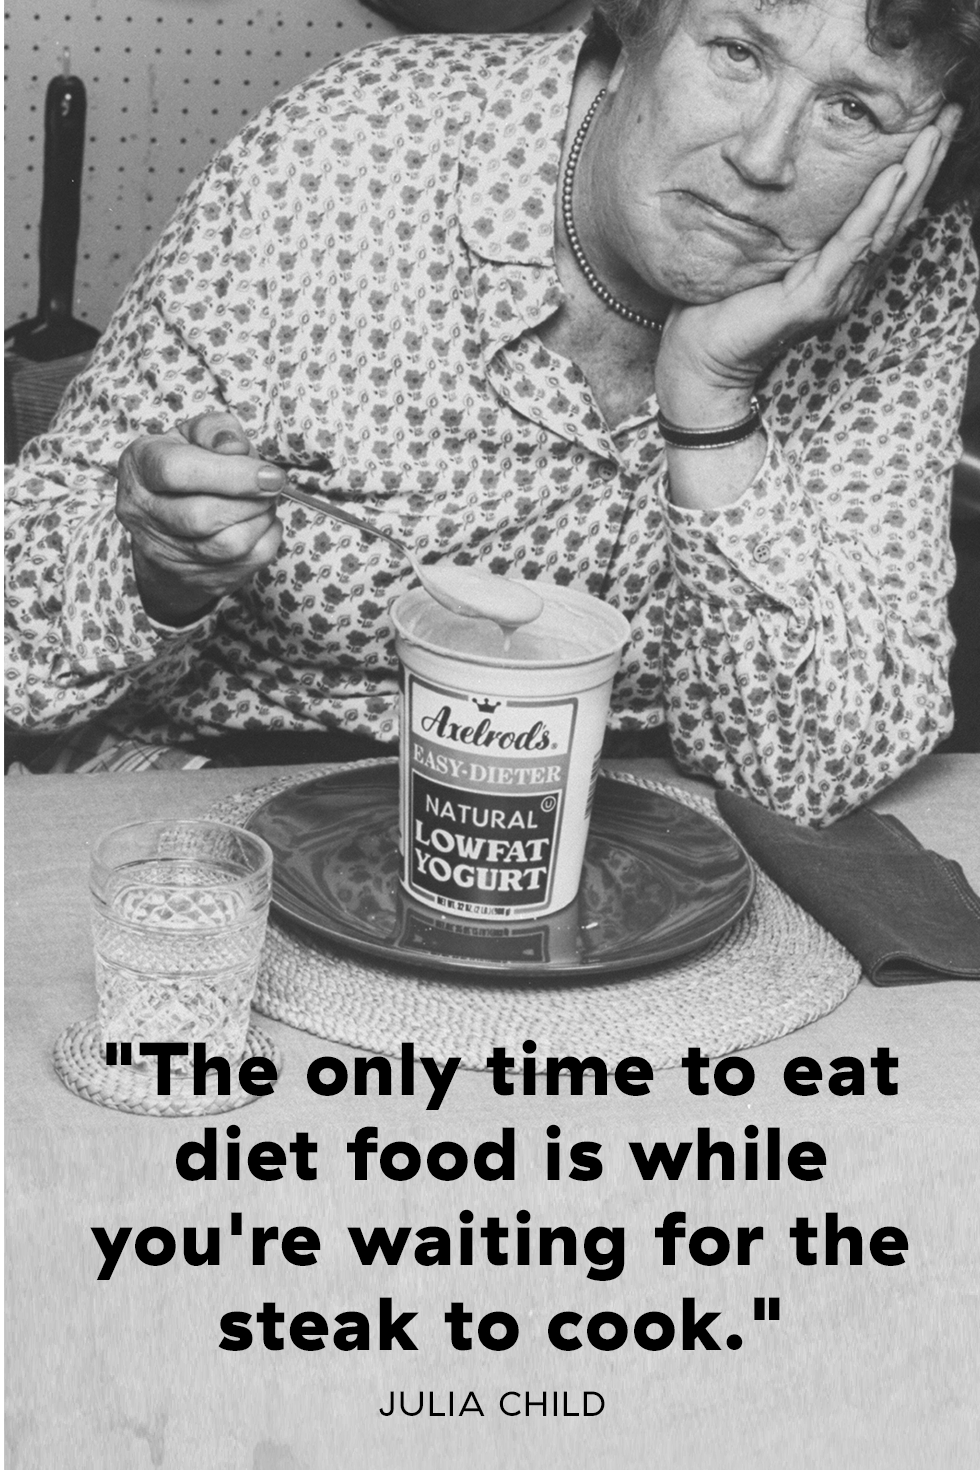 20 Of The Greatest Quotes Anyone Has Ever Said About Food Funny Diet Quotes Eating Food Funny Food